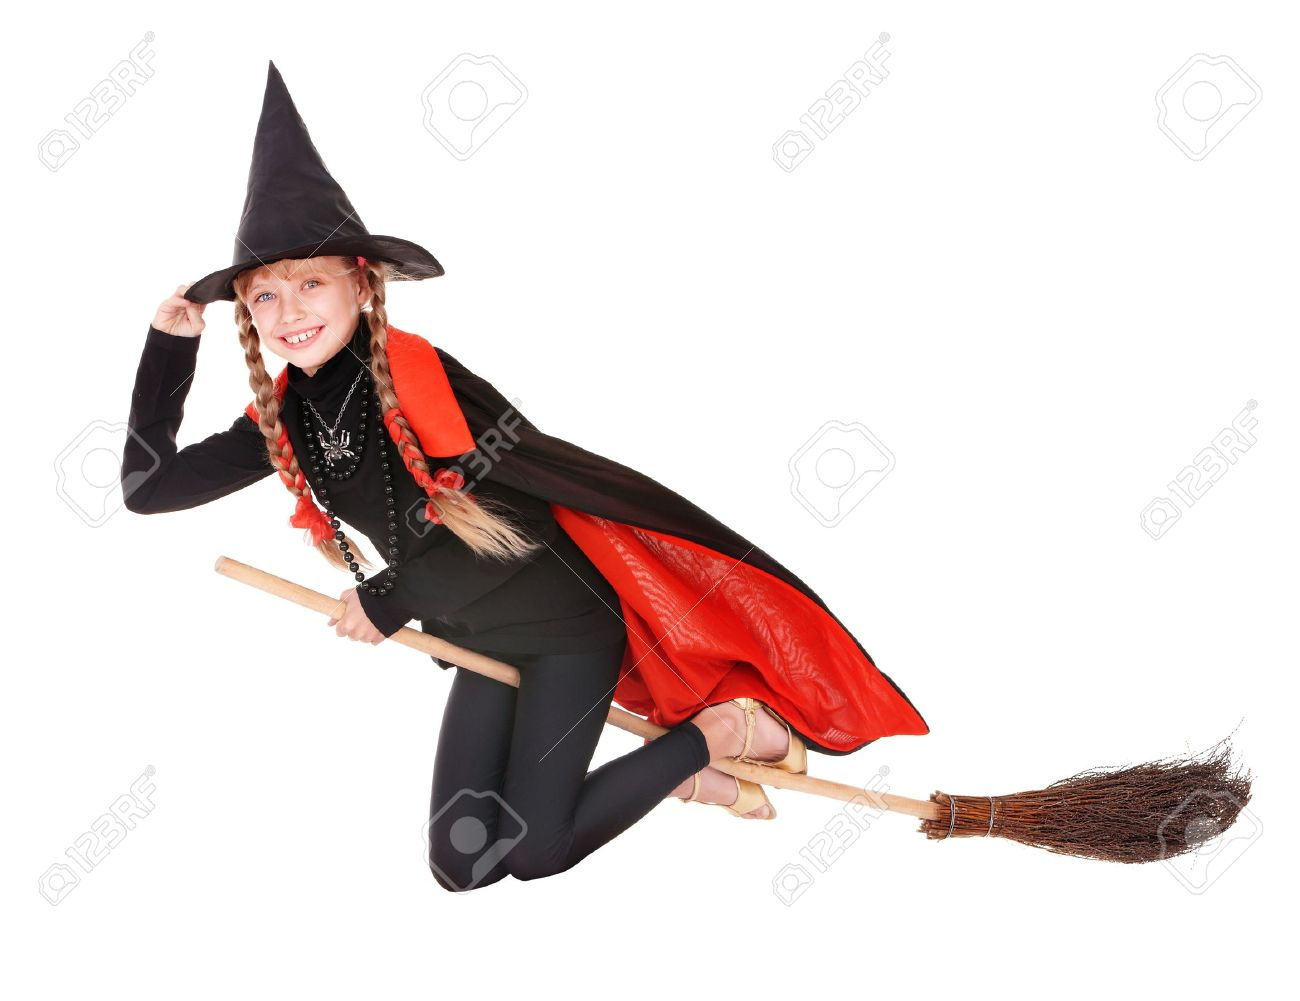 Costume Shoes Images & Stock Pictures. Royalty Free Costume Shoes ...